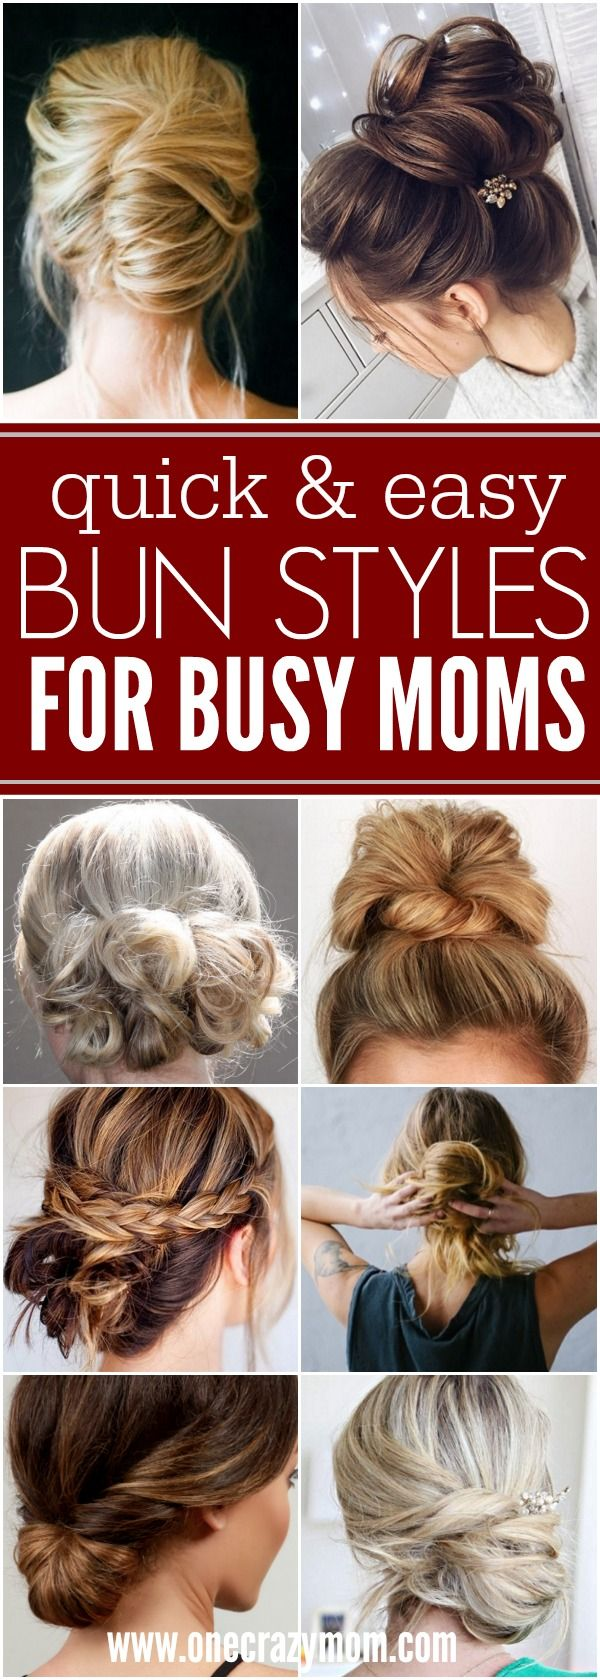 You will love these quick and easy cute bun hairstyles for busy moms